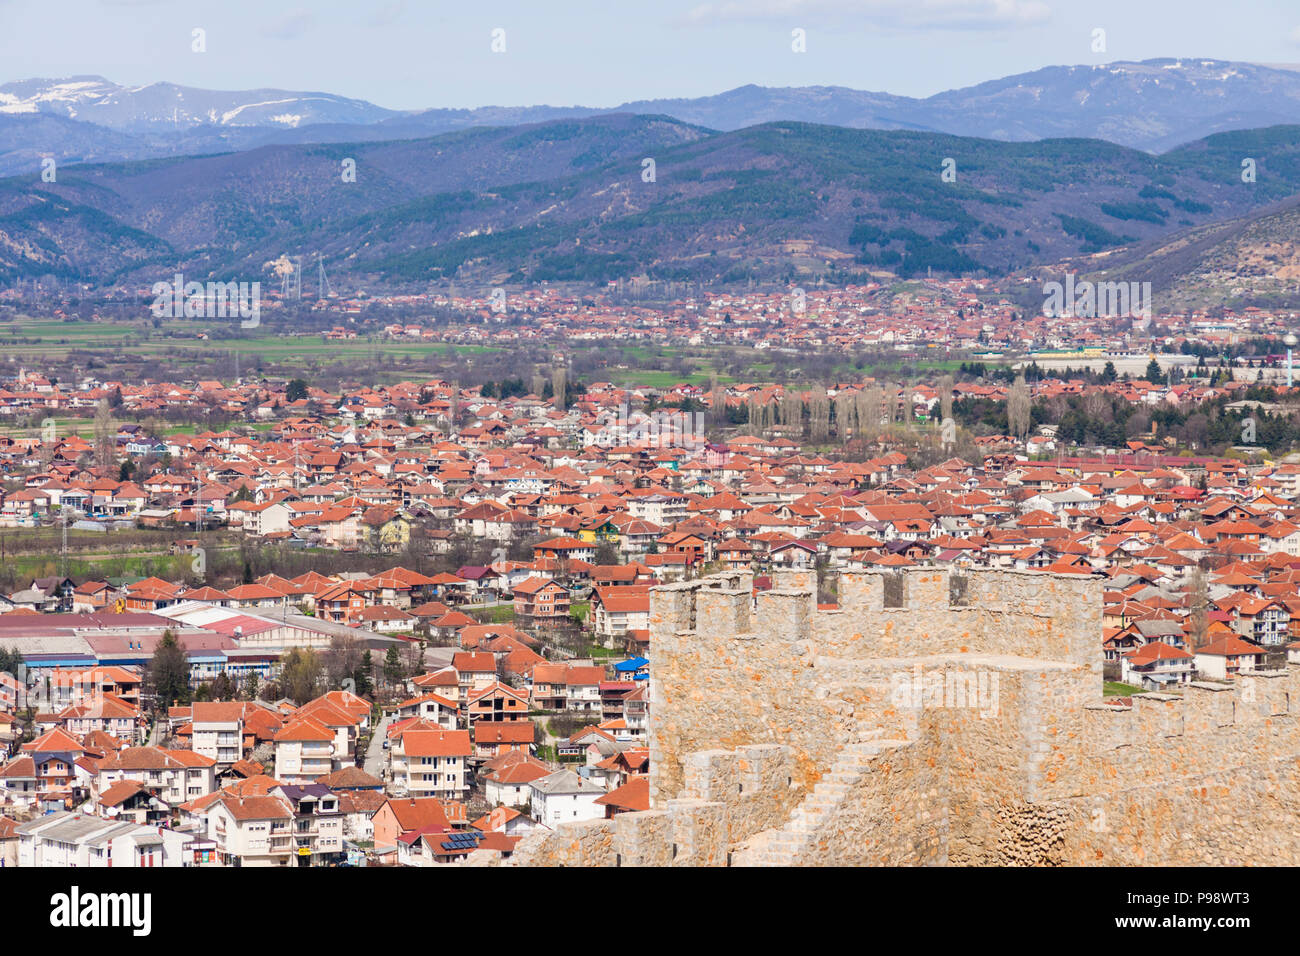 Ohrid, Republic of Macedonia : Samuel's Fortress and overview of the Unesco listed old town of Ohrid. Built on the site of an earlier 4th century BC f - Stock Image